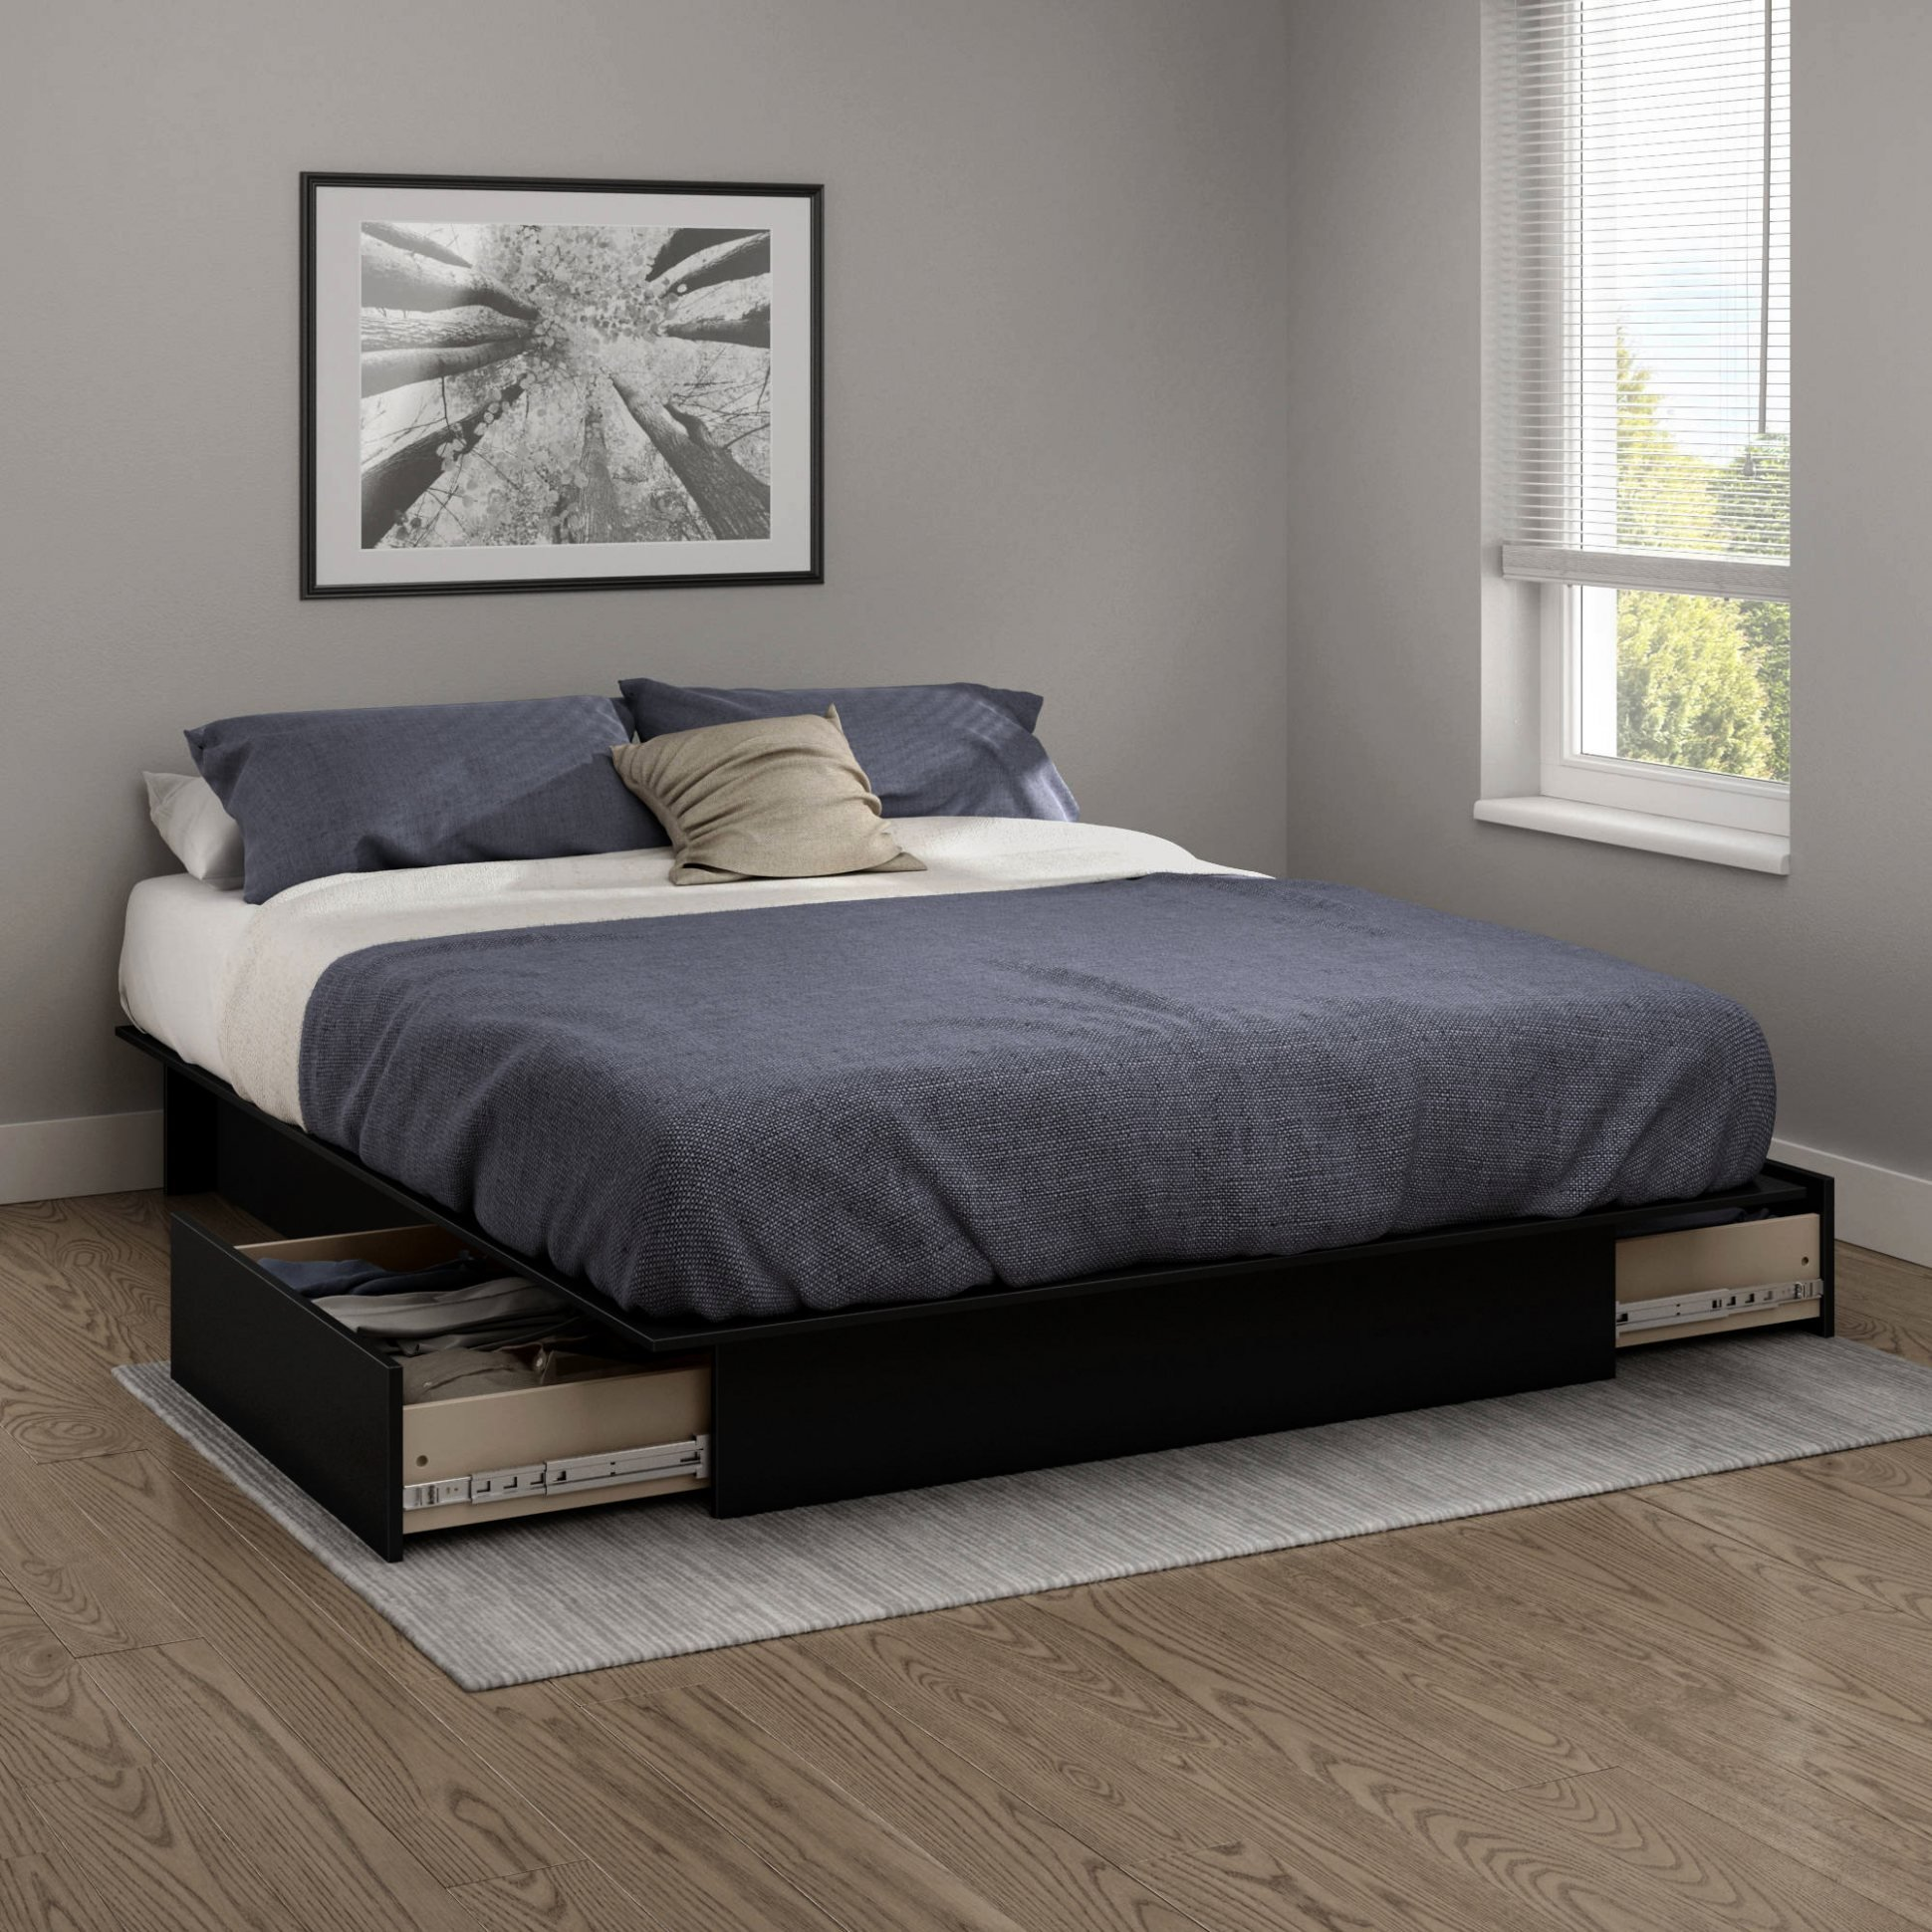 Best Bedroom Furniture Amazing How Much Does A Dresser Cost 2 With Pictures